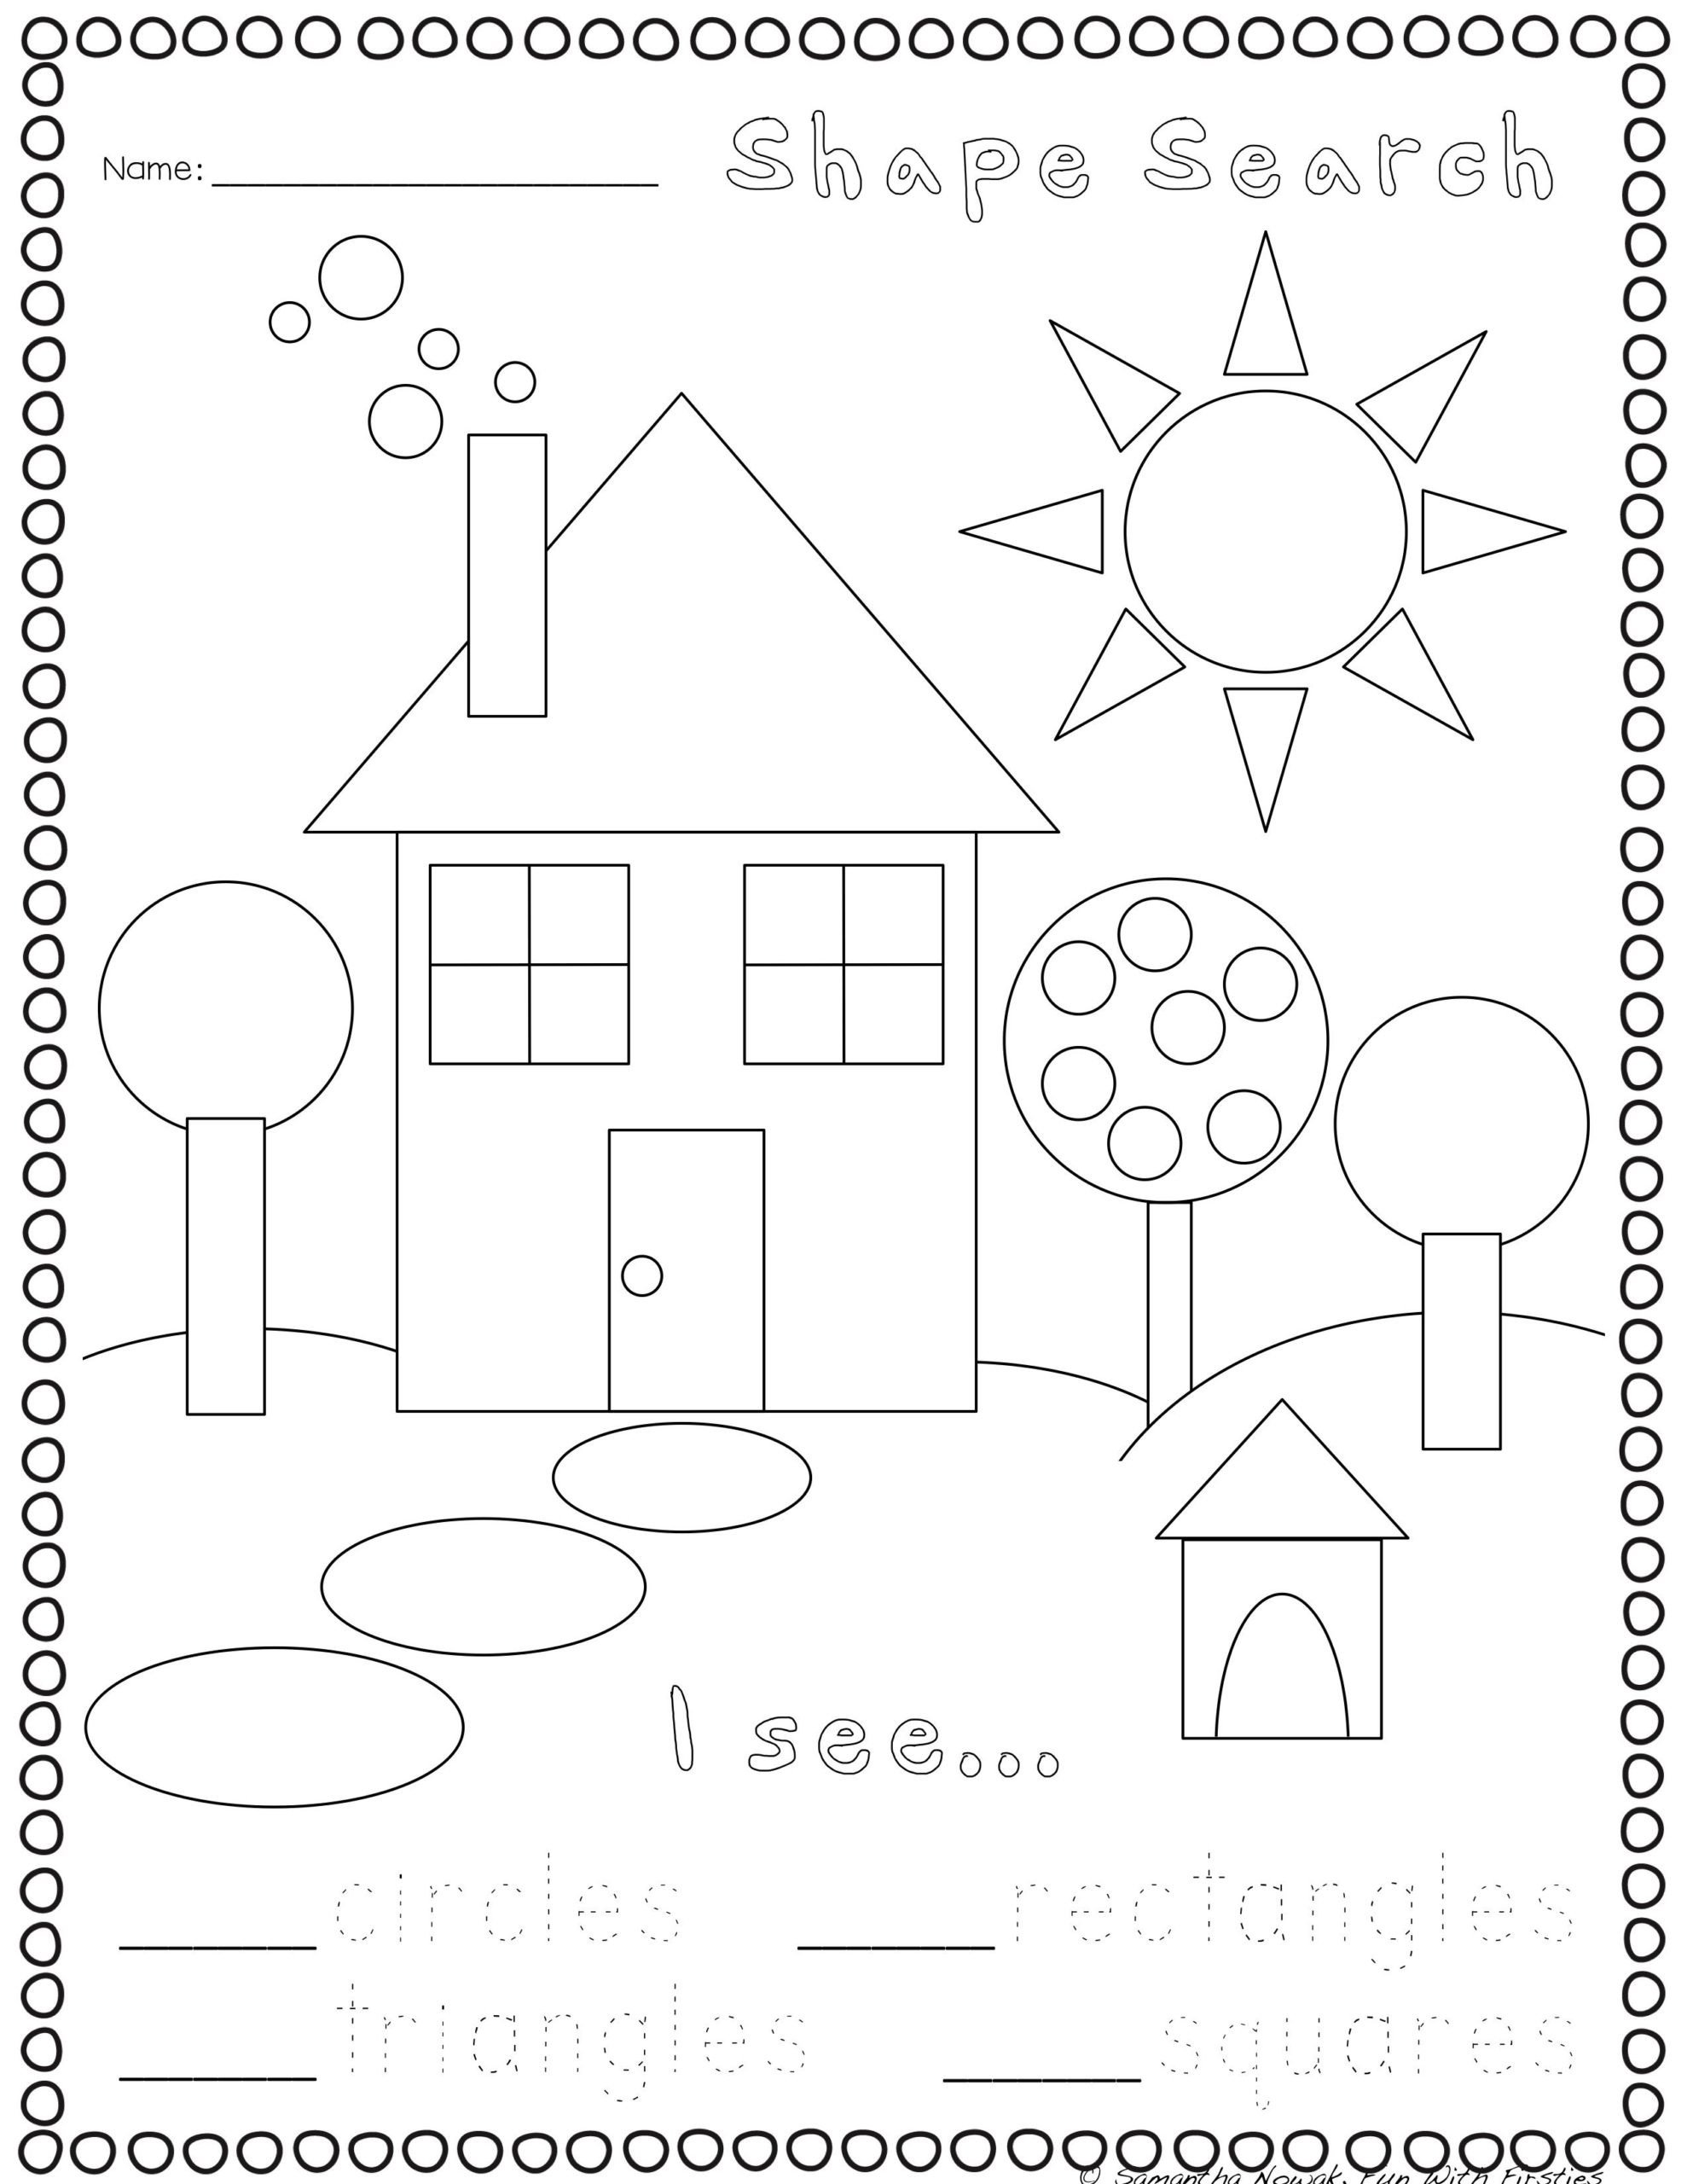 Geometric Shape Pattern Worksheets Print Go Geometry Practice Worksheets Shapes Number and